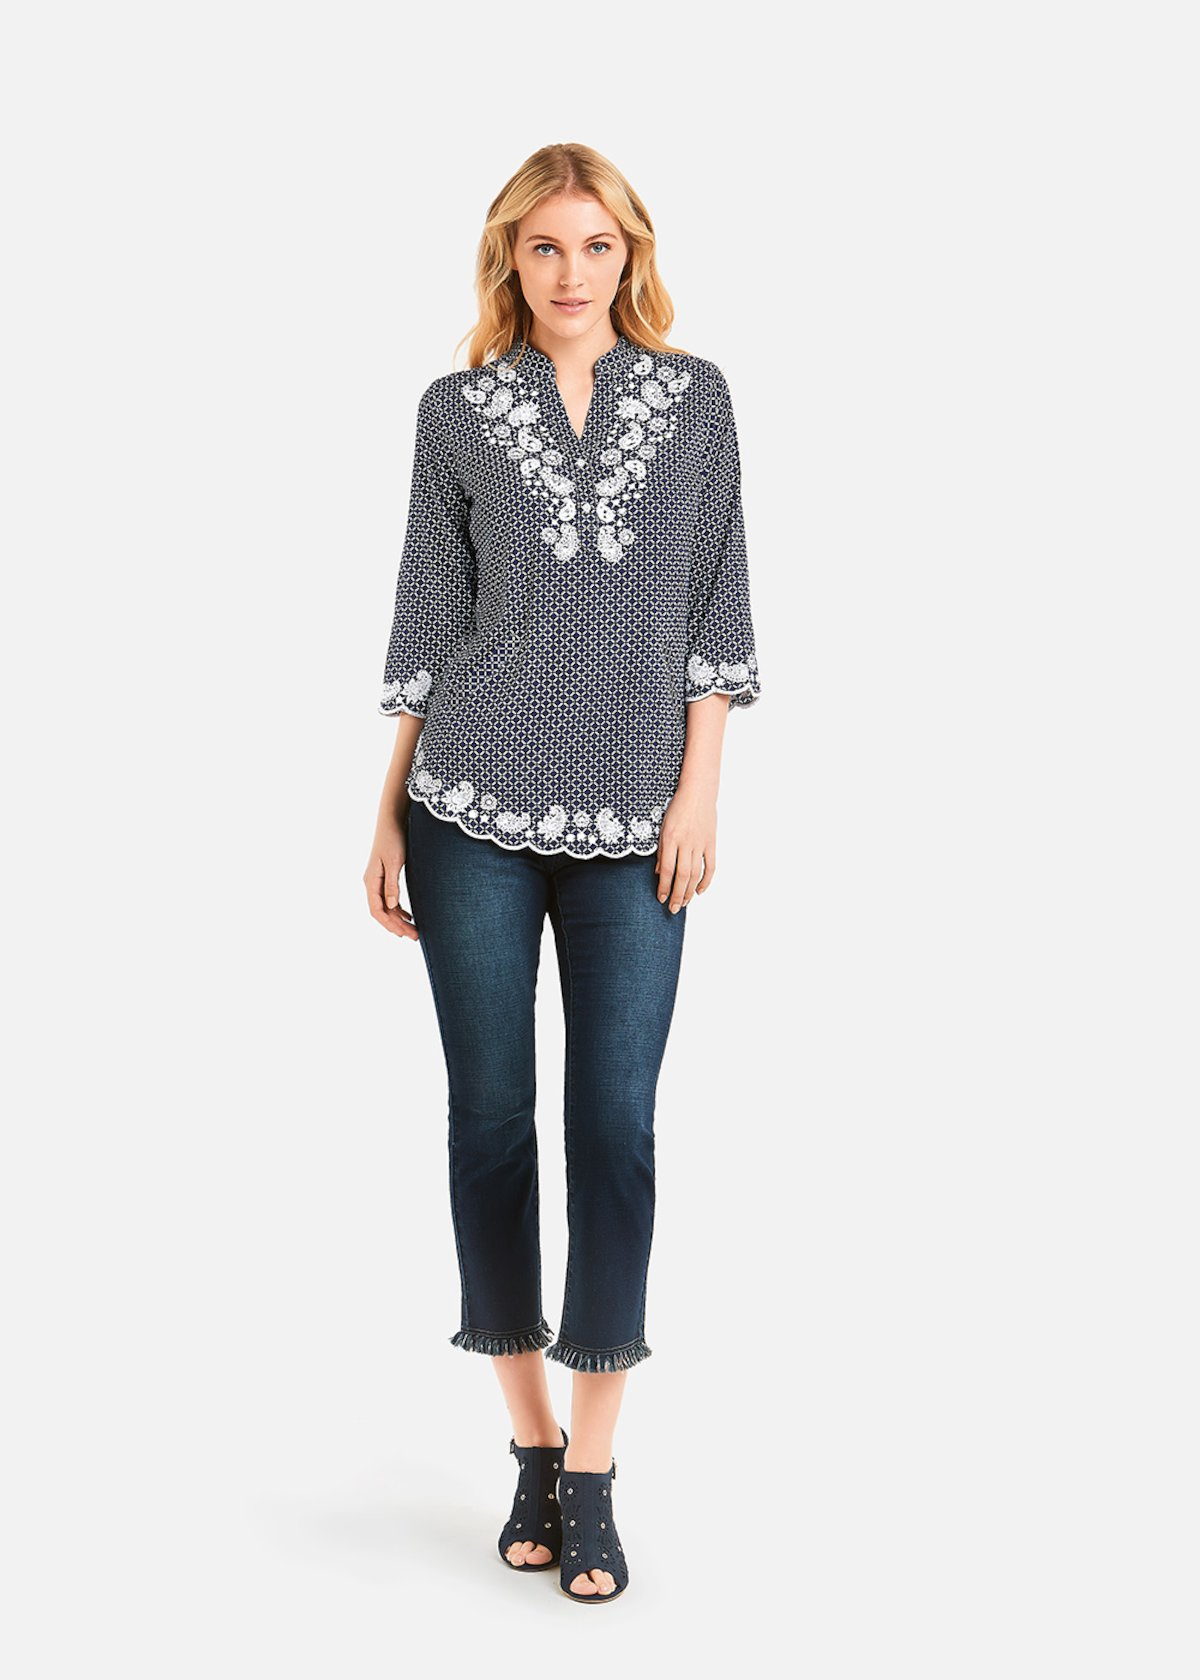 Crissy Shirt geometric pattern - Medium Blue / White Fantasia